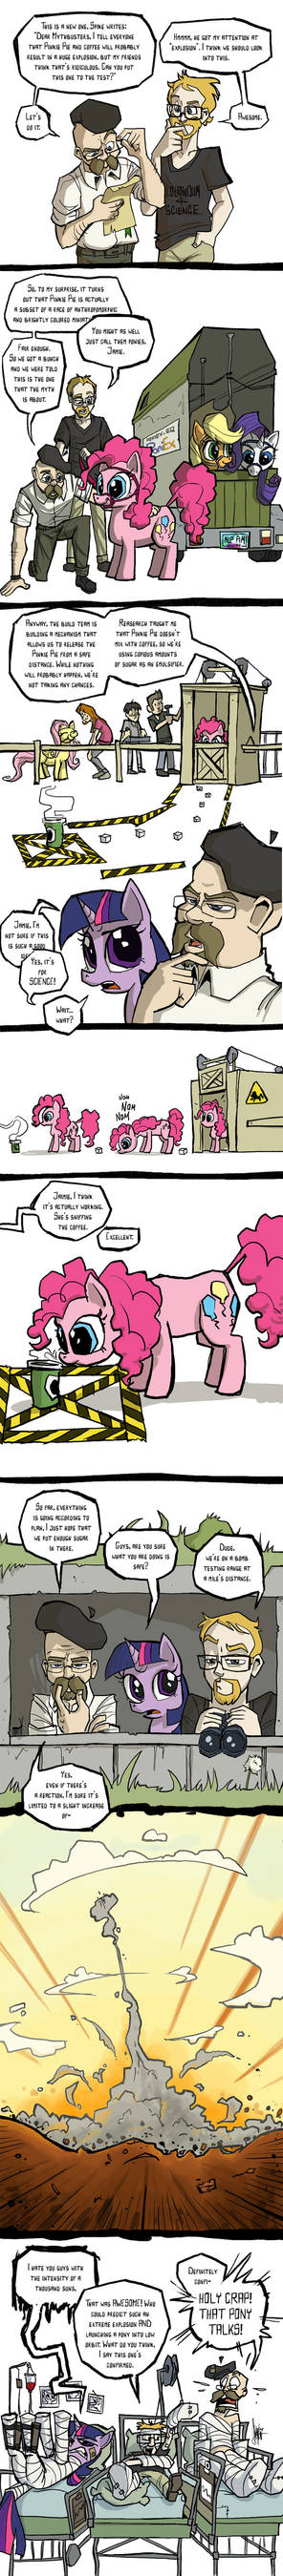 Today on Mythbusters: ponies